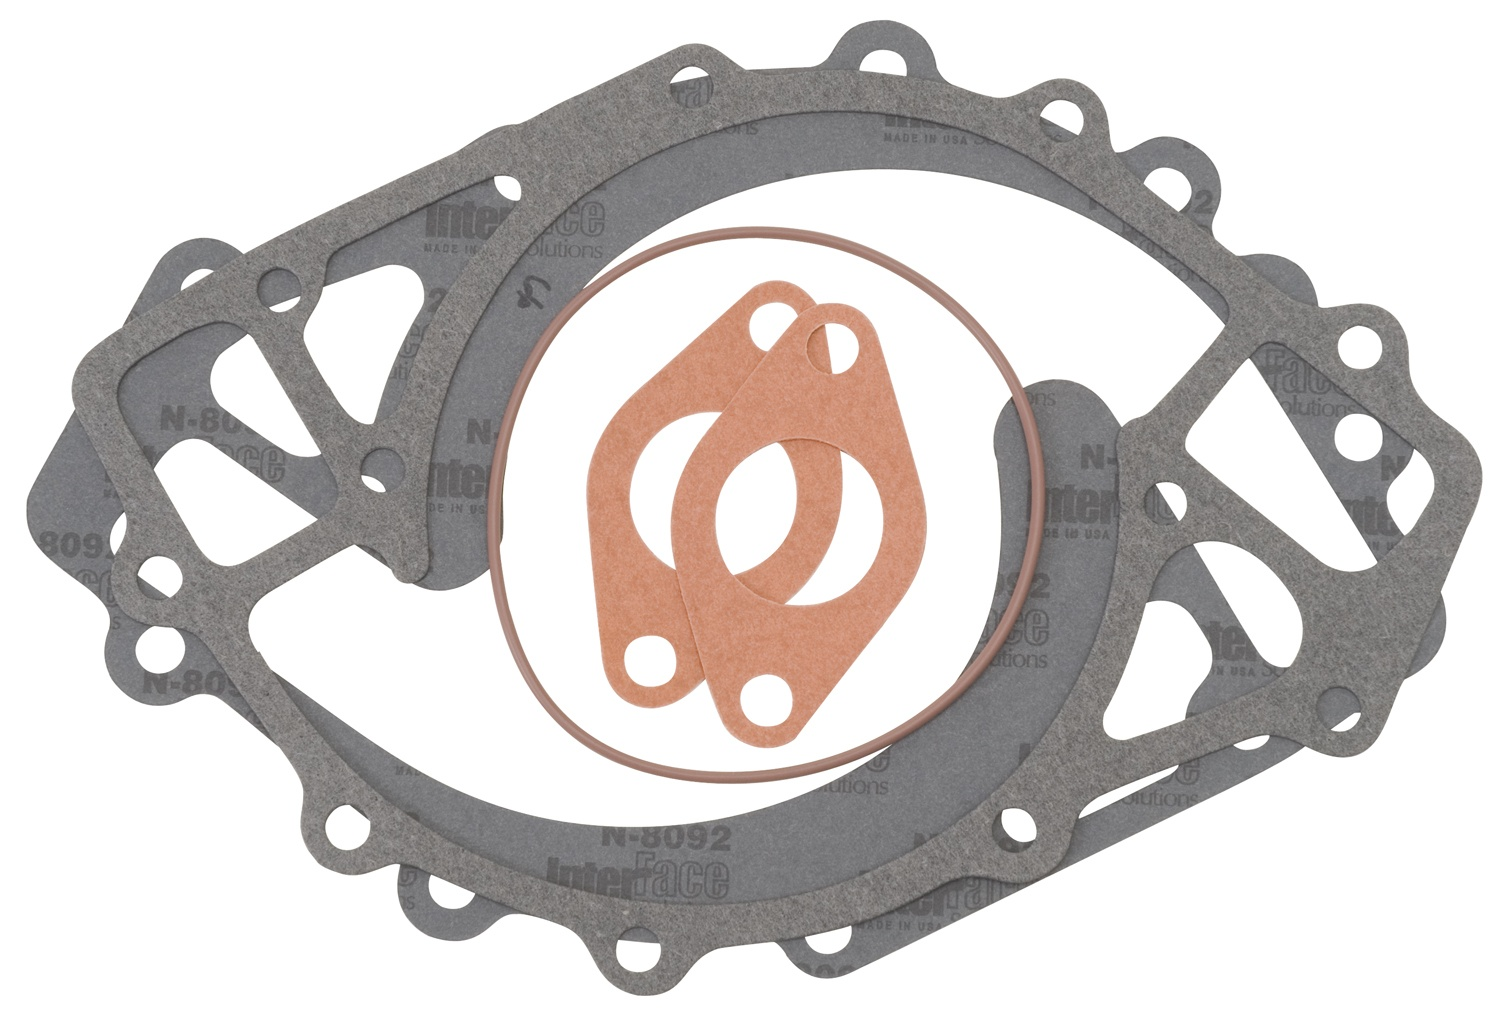 Edelbrock 7258 WP GASKET KIT FORD BBF & FE